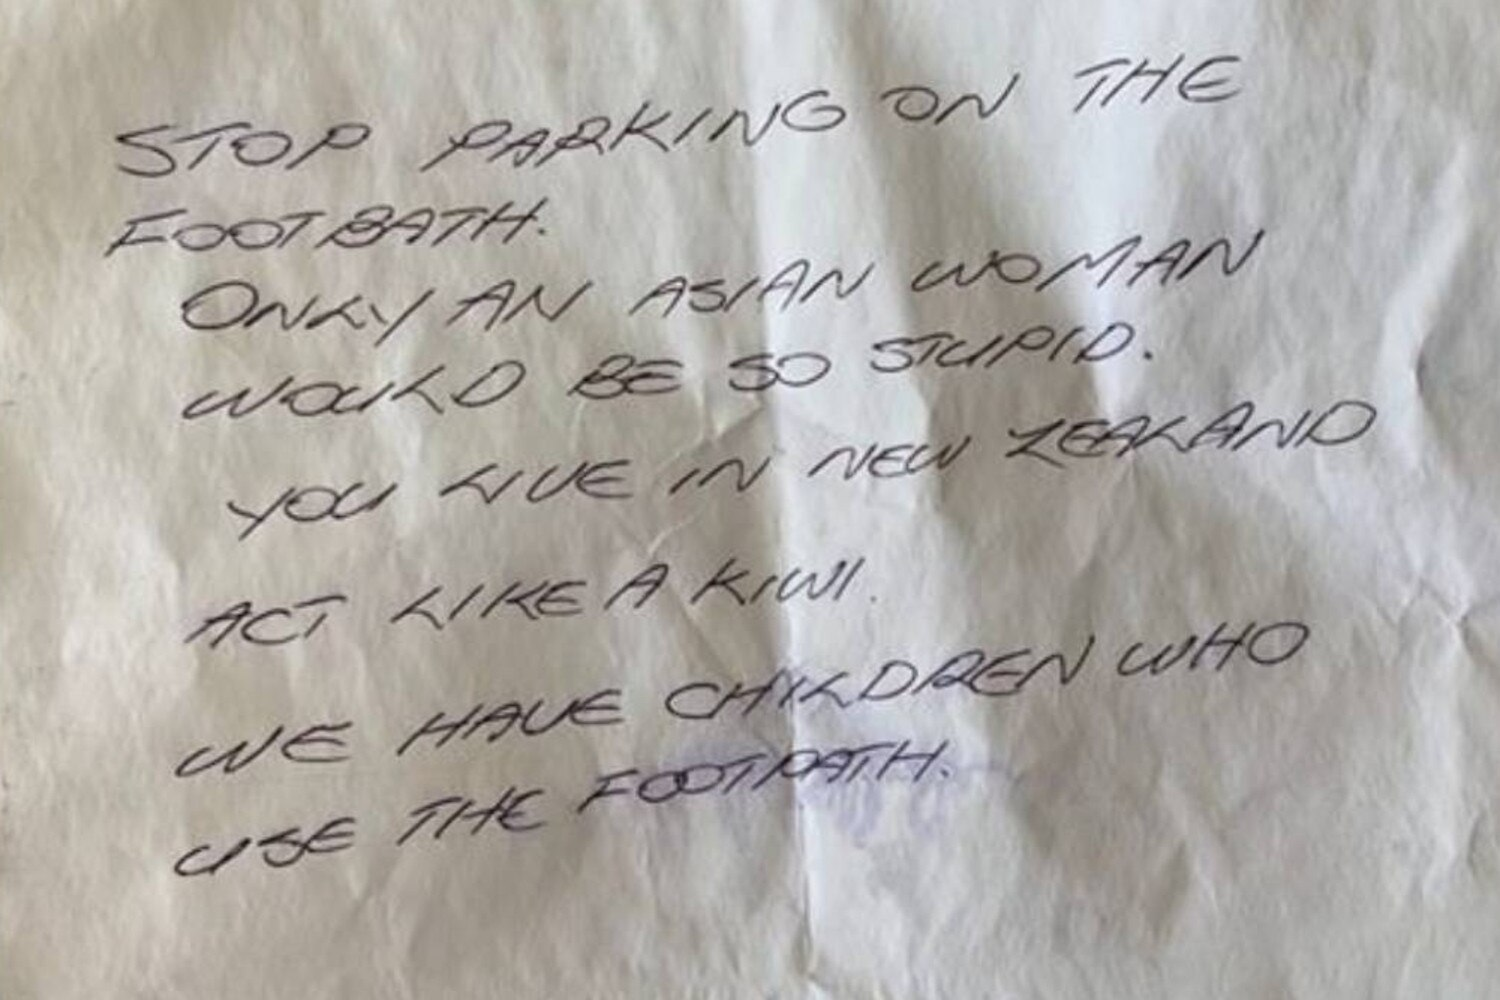 A woman has shared the racist note left on her car after she parked on the footpath. Picture: Supplied